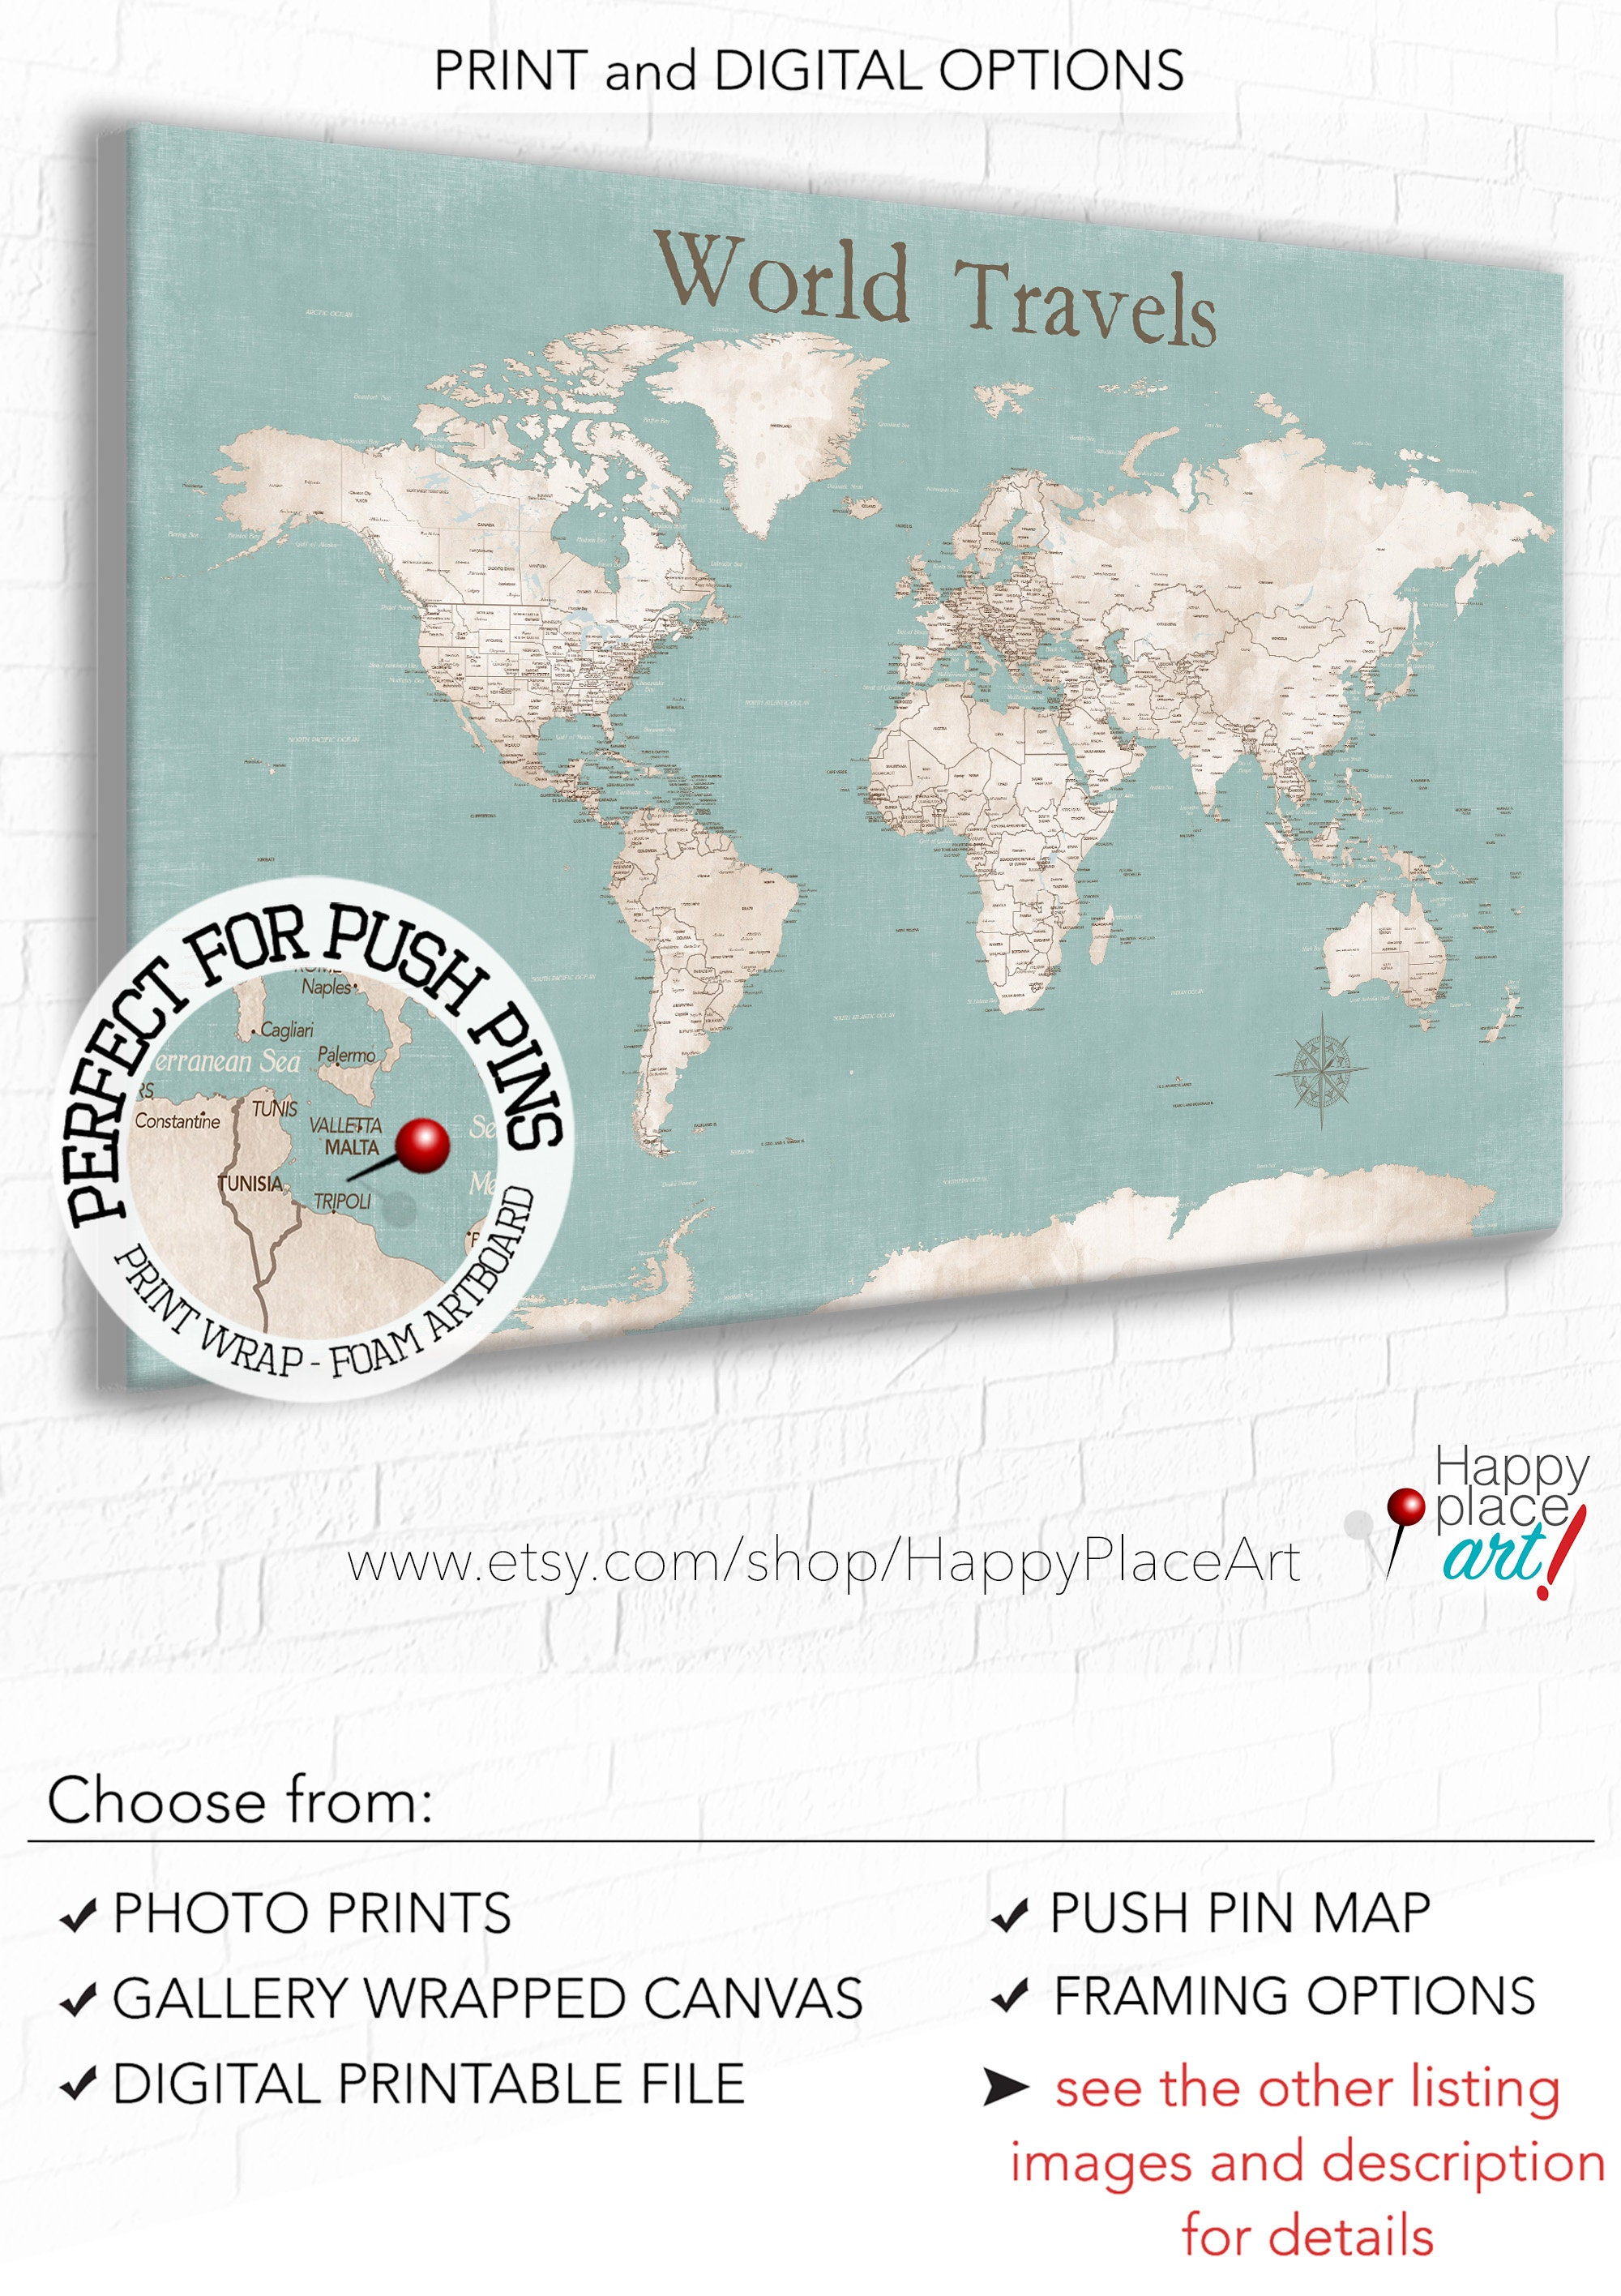 Push Pin Map of the World to Pin Travels Personalize with a Custom Key Wording Map Journal Travels Anniversary Gift for Her World Canvas